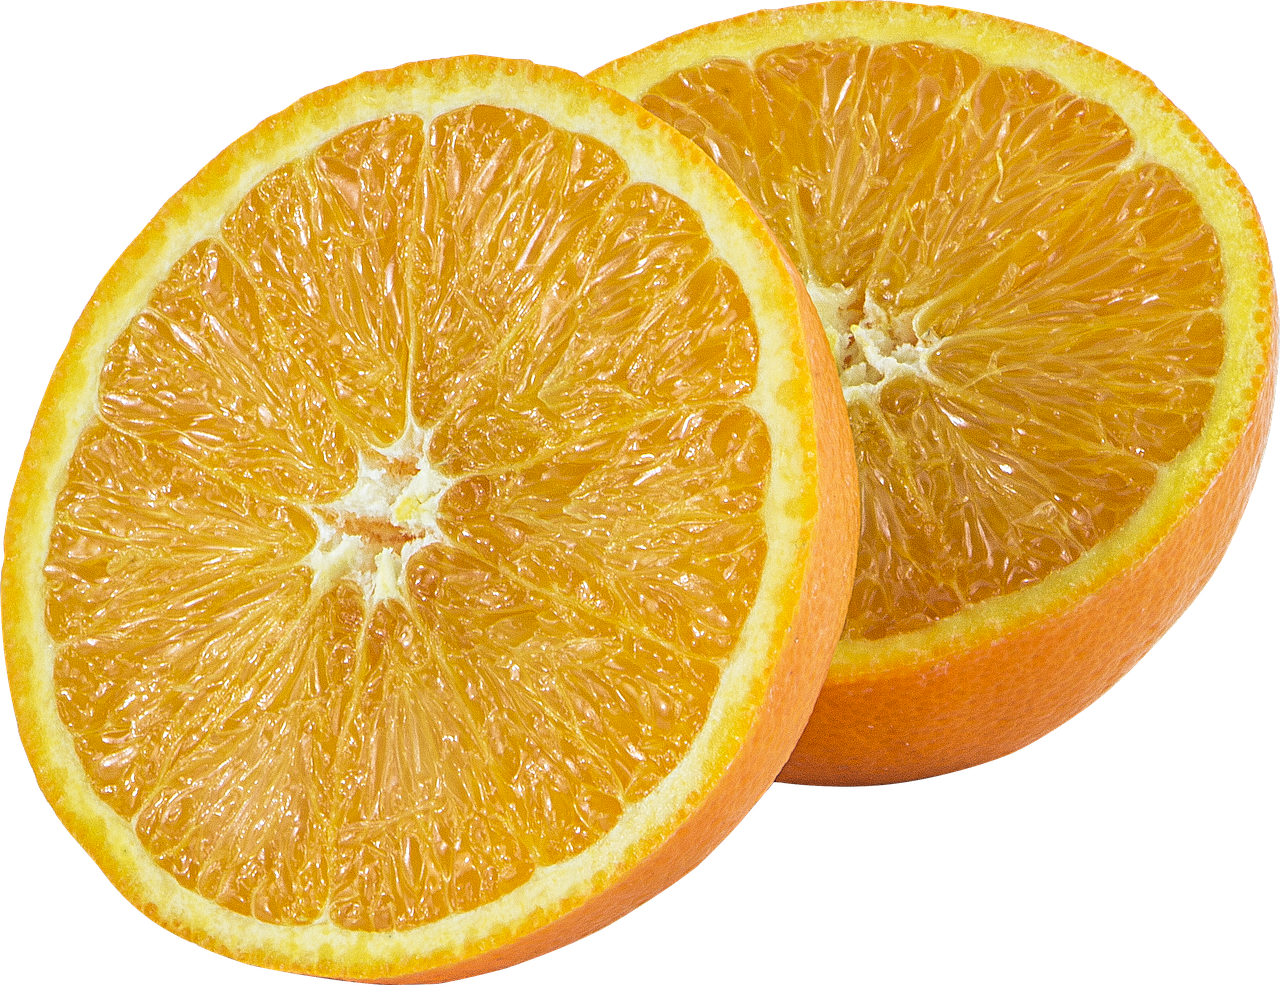 Fruit Orange Png Free Image On Pixabay Choose from 42000+ orange graphic resources and download in the form of png, eps, ai or psd. https creativecommons org licenses publicdomain